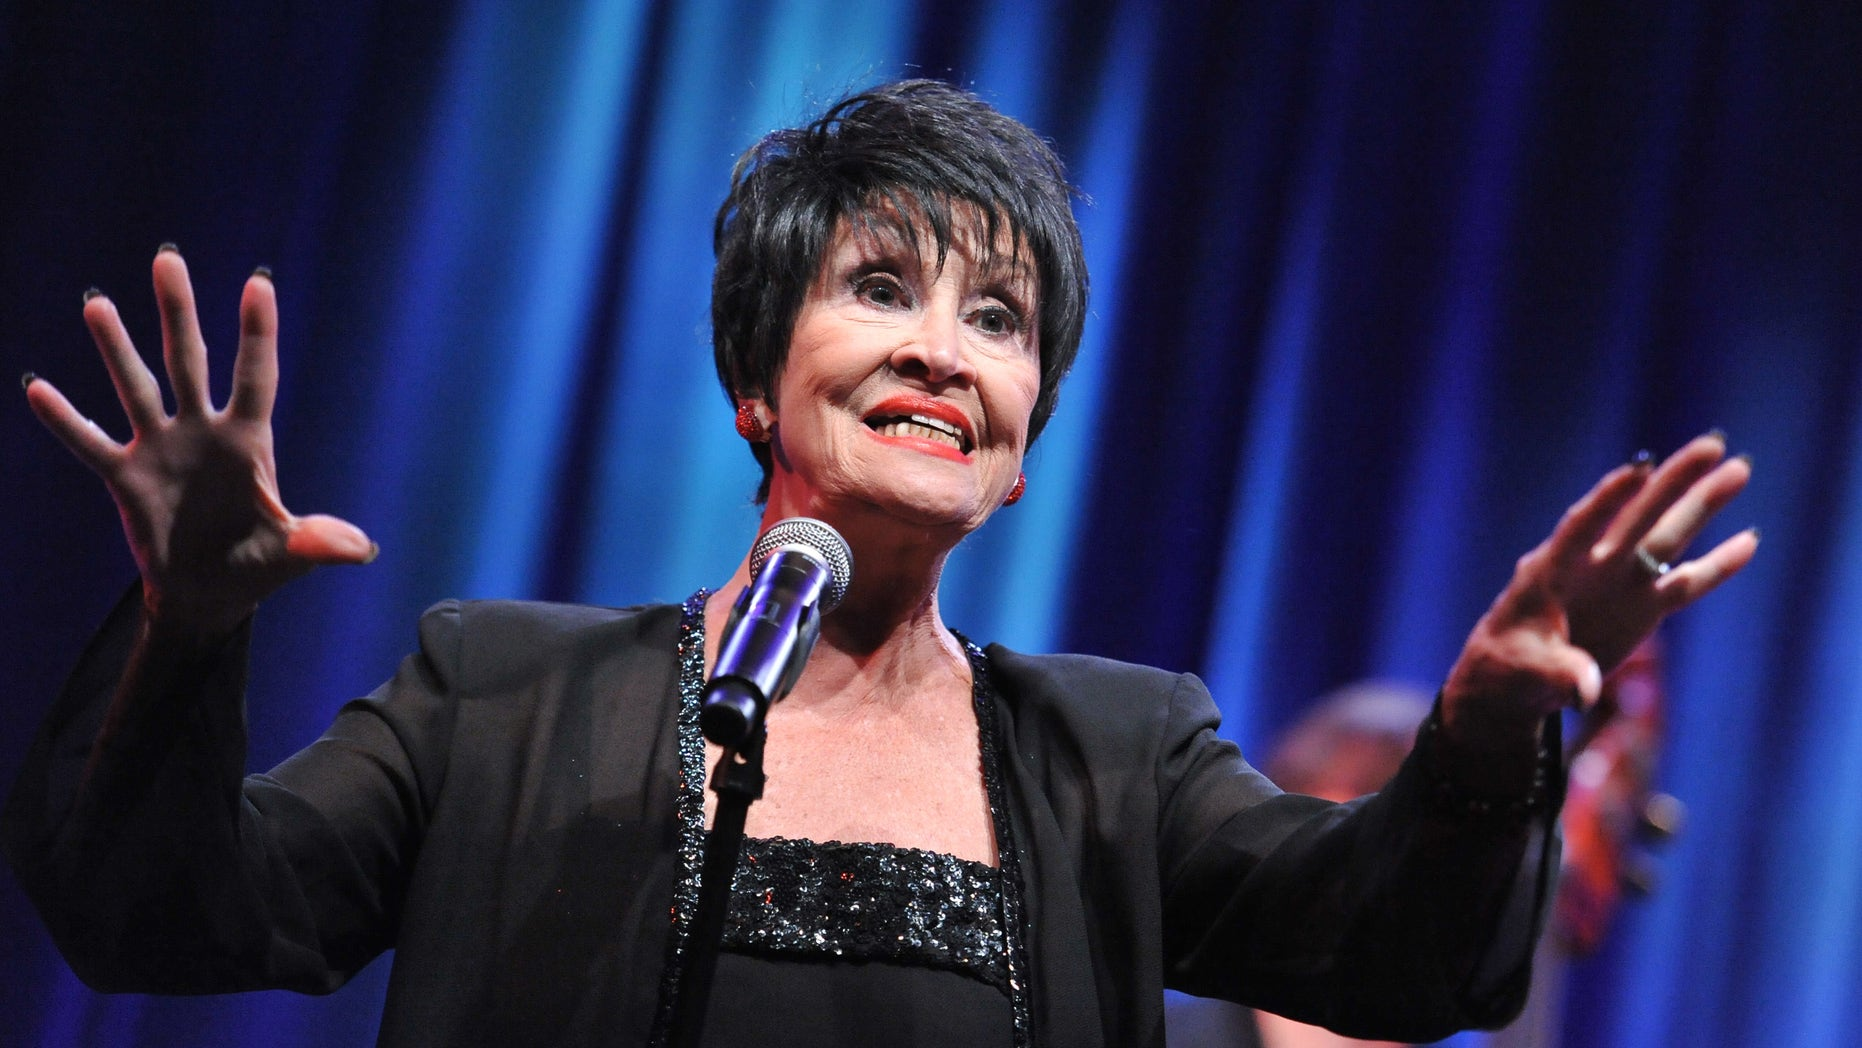 Chita Rivera performs during the âChita Rivera: A Lot of Livinâ to Doâ segment of the PBS 2015 Summer TCA Tour held at the Beverly Hilton Hotel on Sunday, Aug. 2, 2015 in Beverly Hills, Calif. (Photo by Richard Shotwell/Invision/AP)